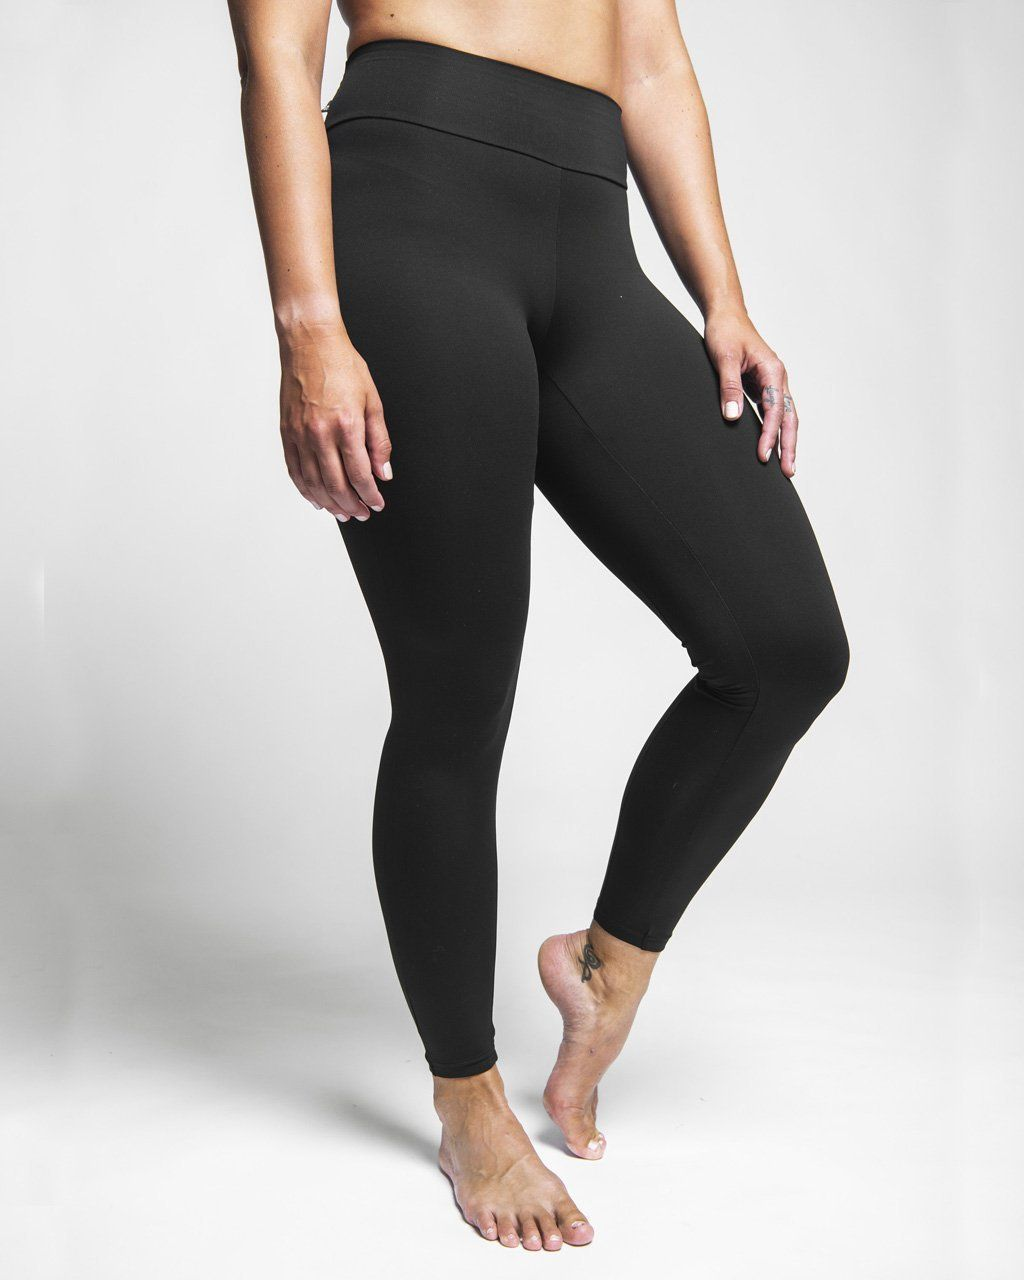 Népra - Saturnus Tights  - Responsible Activewear - Weekendbee - sustainable sportswear